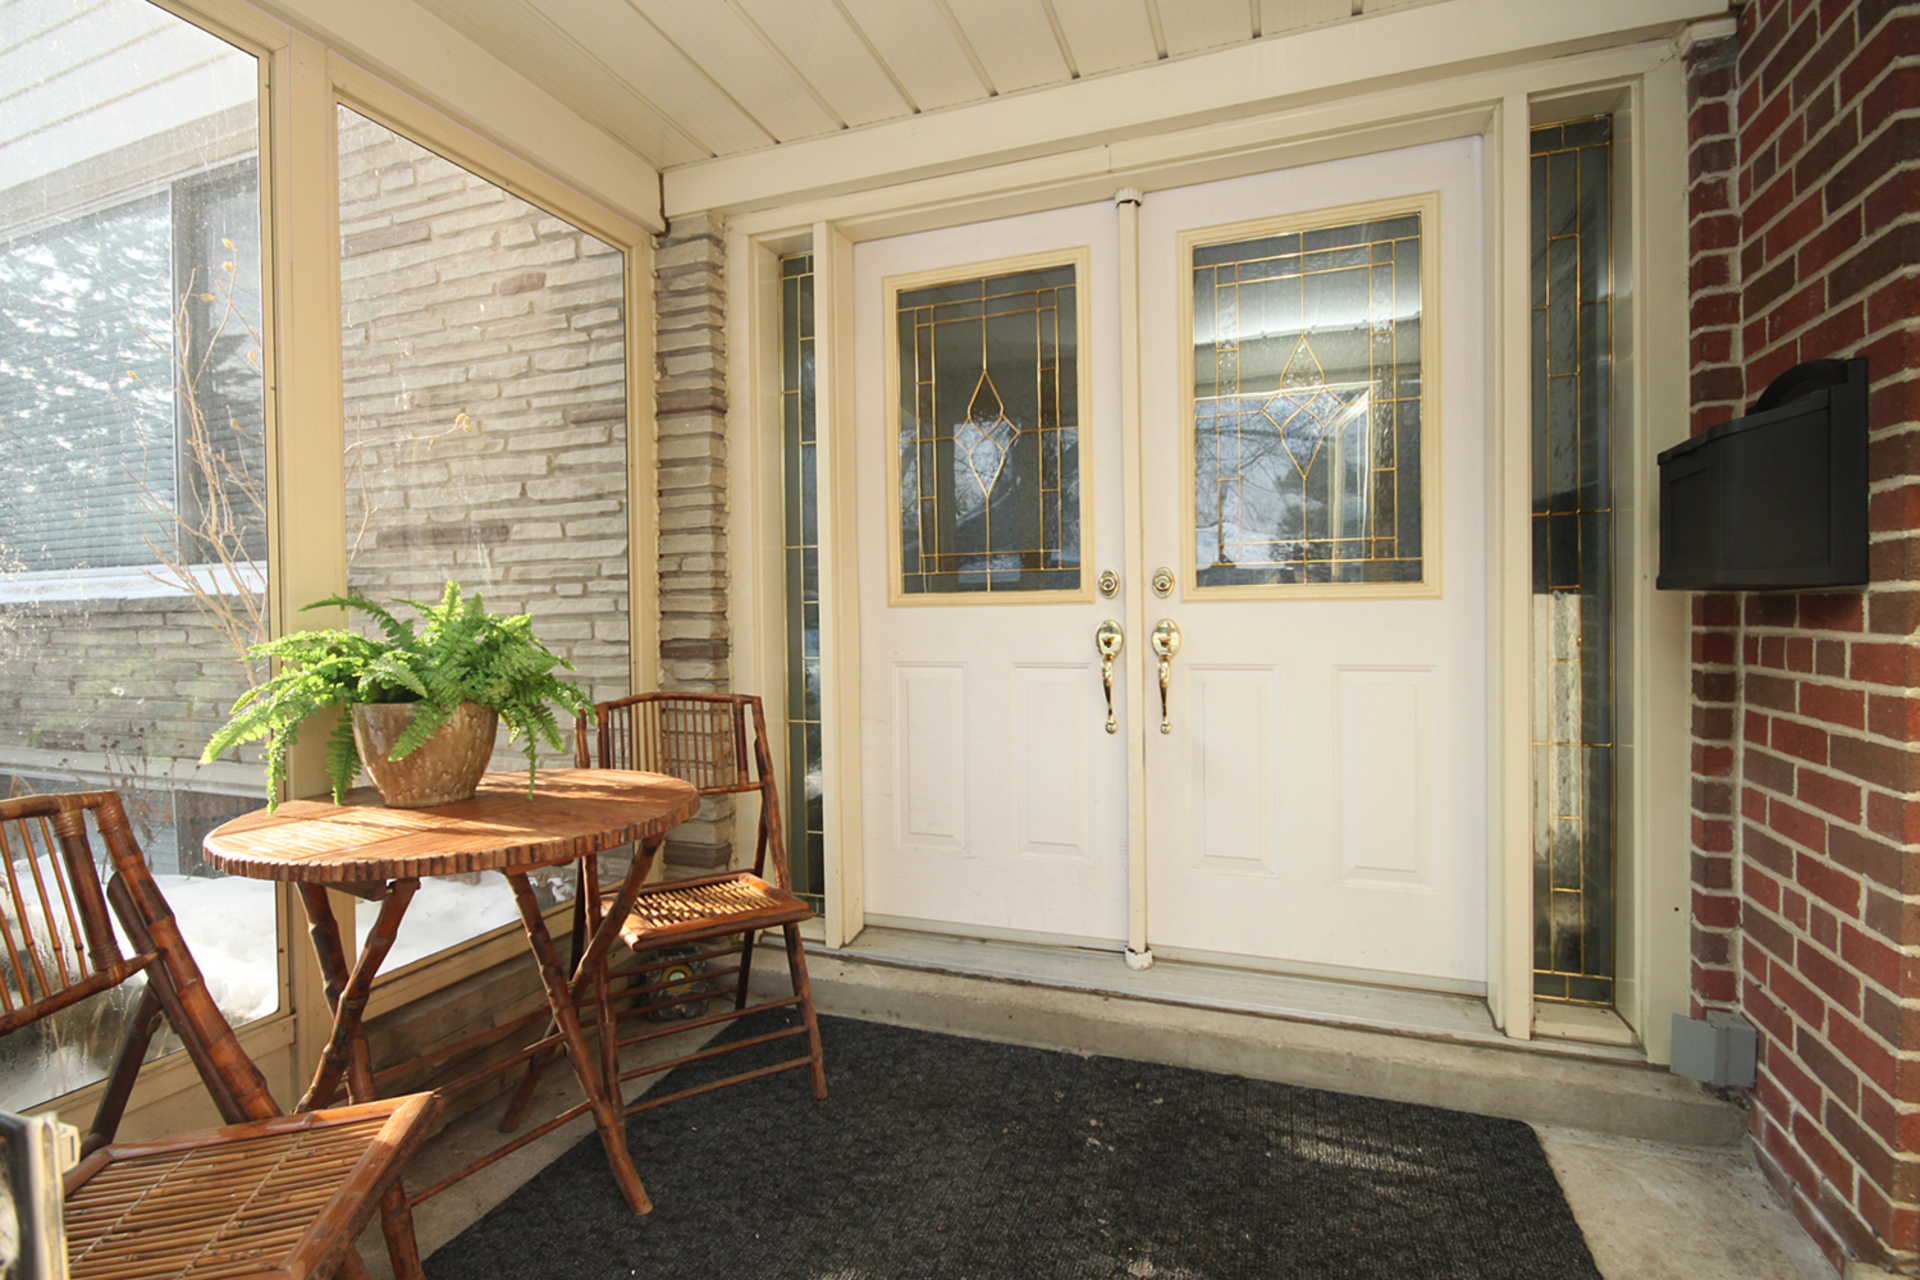 Porch at 53 Dukinfield Crescent, Parkwoods-Donalda, Toronto